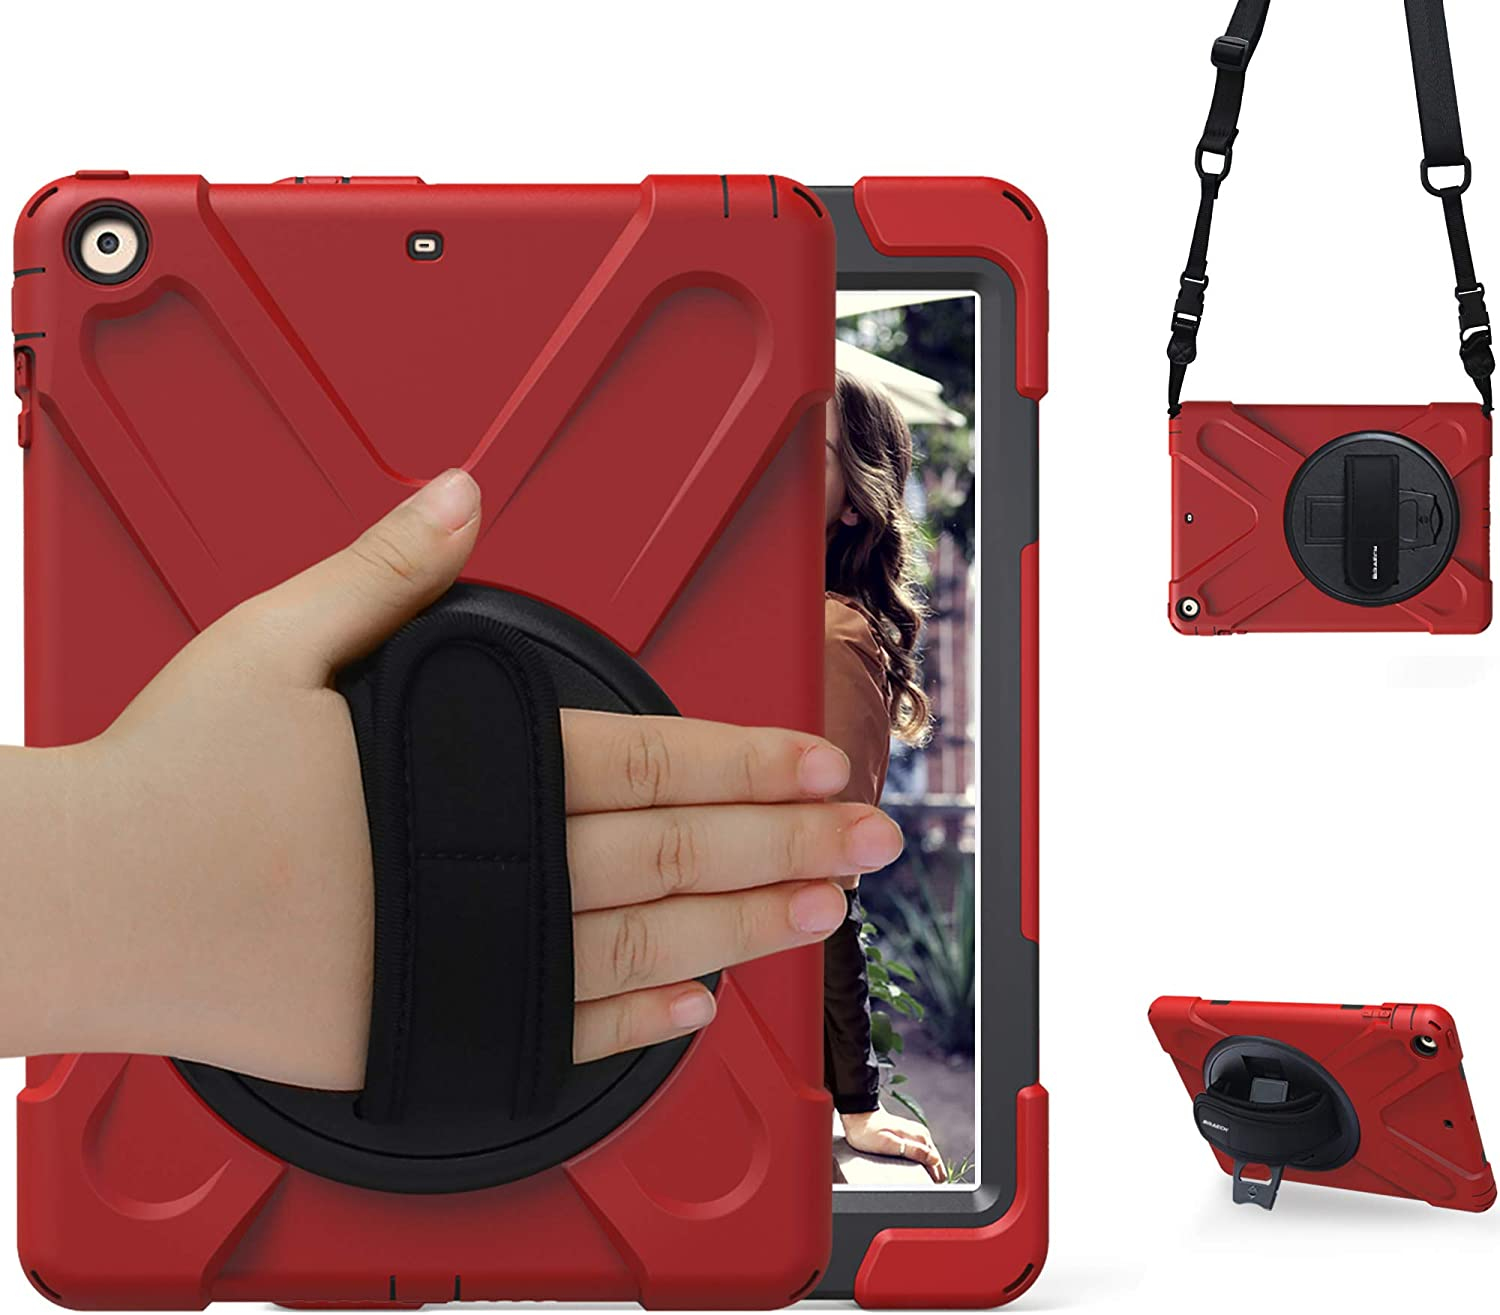 BRAECN iPad Air Shockproof Case [Heavy Duty] Full-Body Rugged Protective Case with 360 Degree Swivel Kickstand/Hand Strap/Shoulder Strap for iPad Air A1474 A1745 A1476 Case(Red)